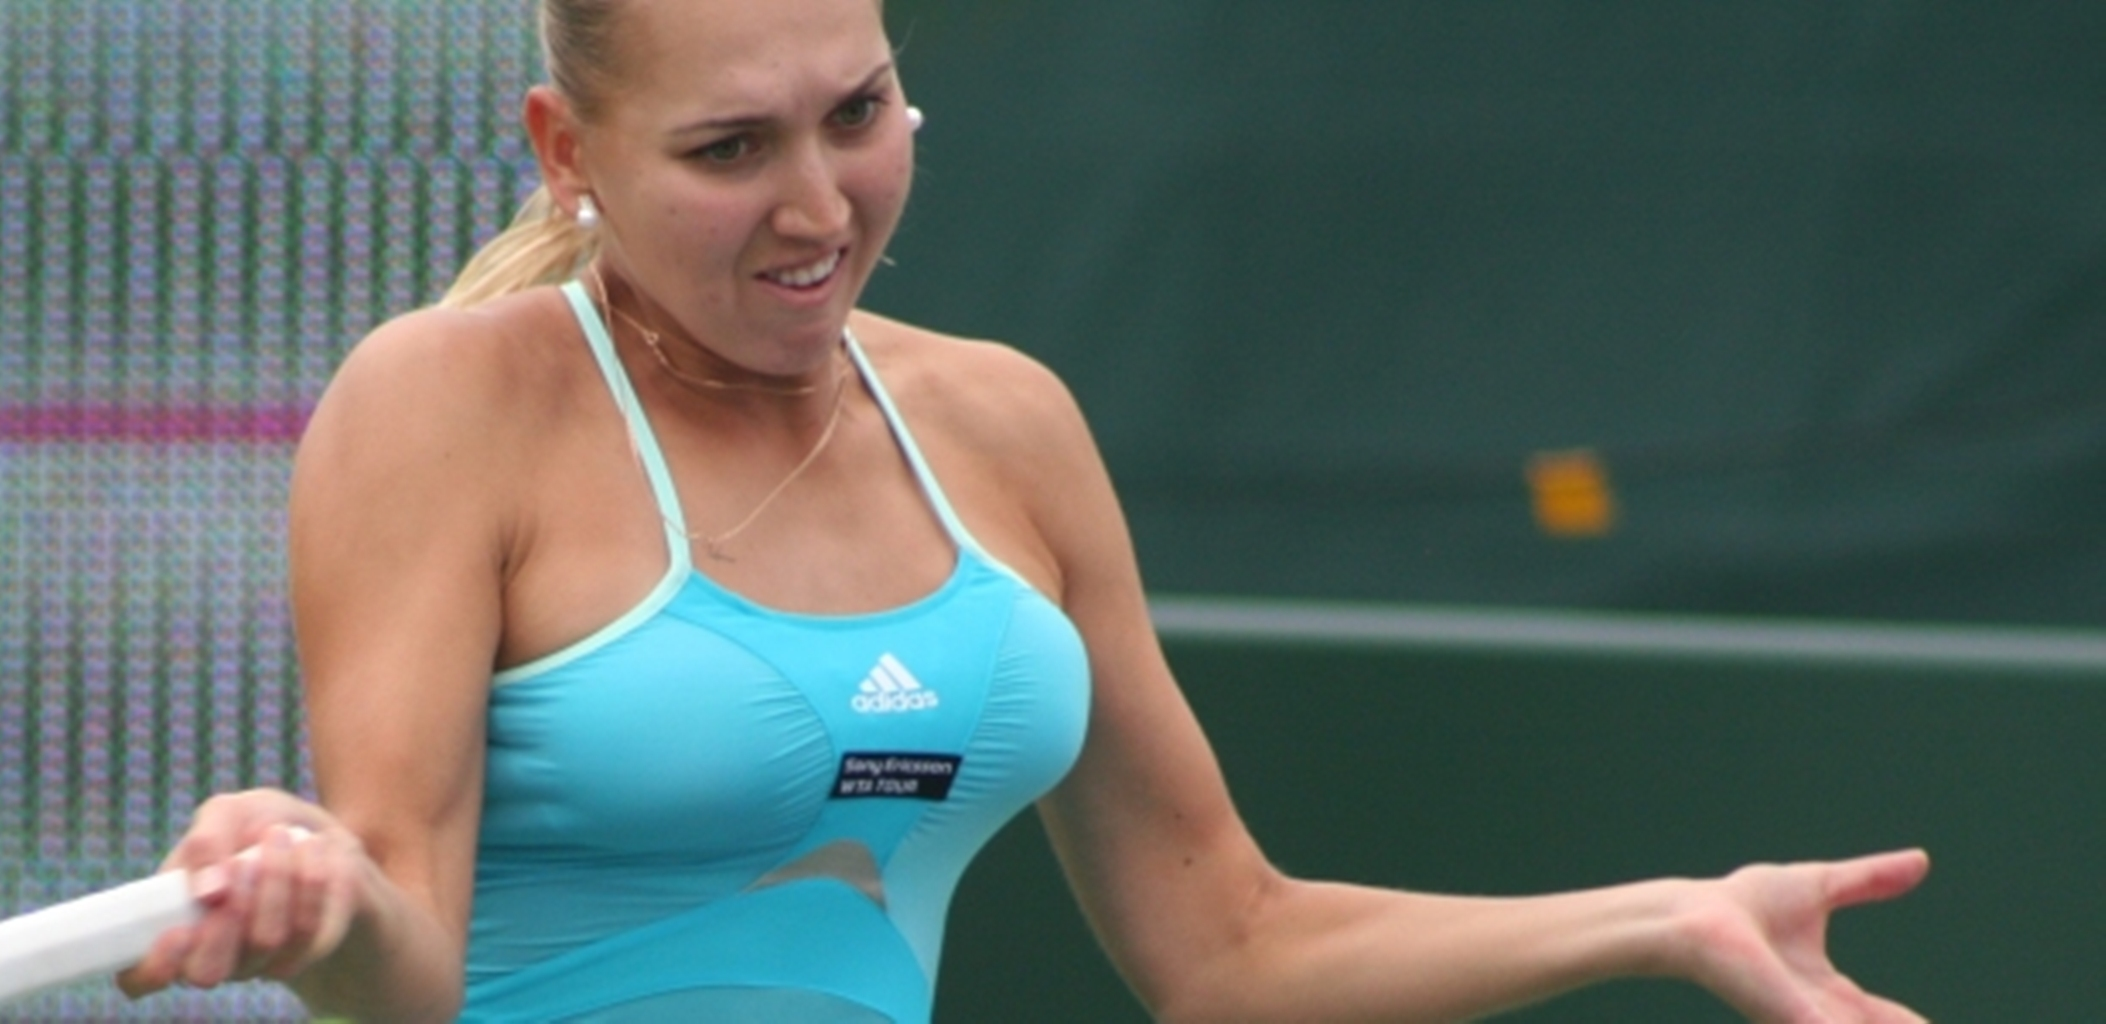 elena vesnina hot photos - photo #26